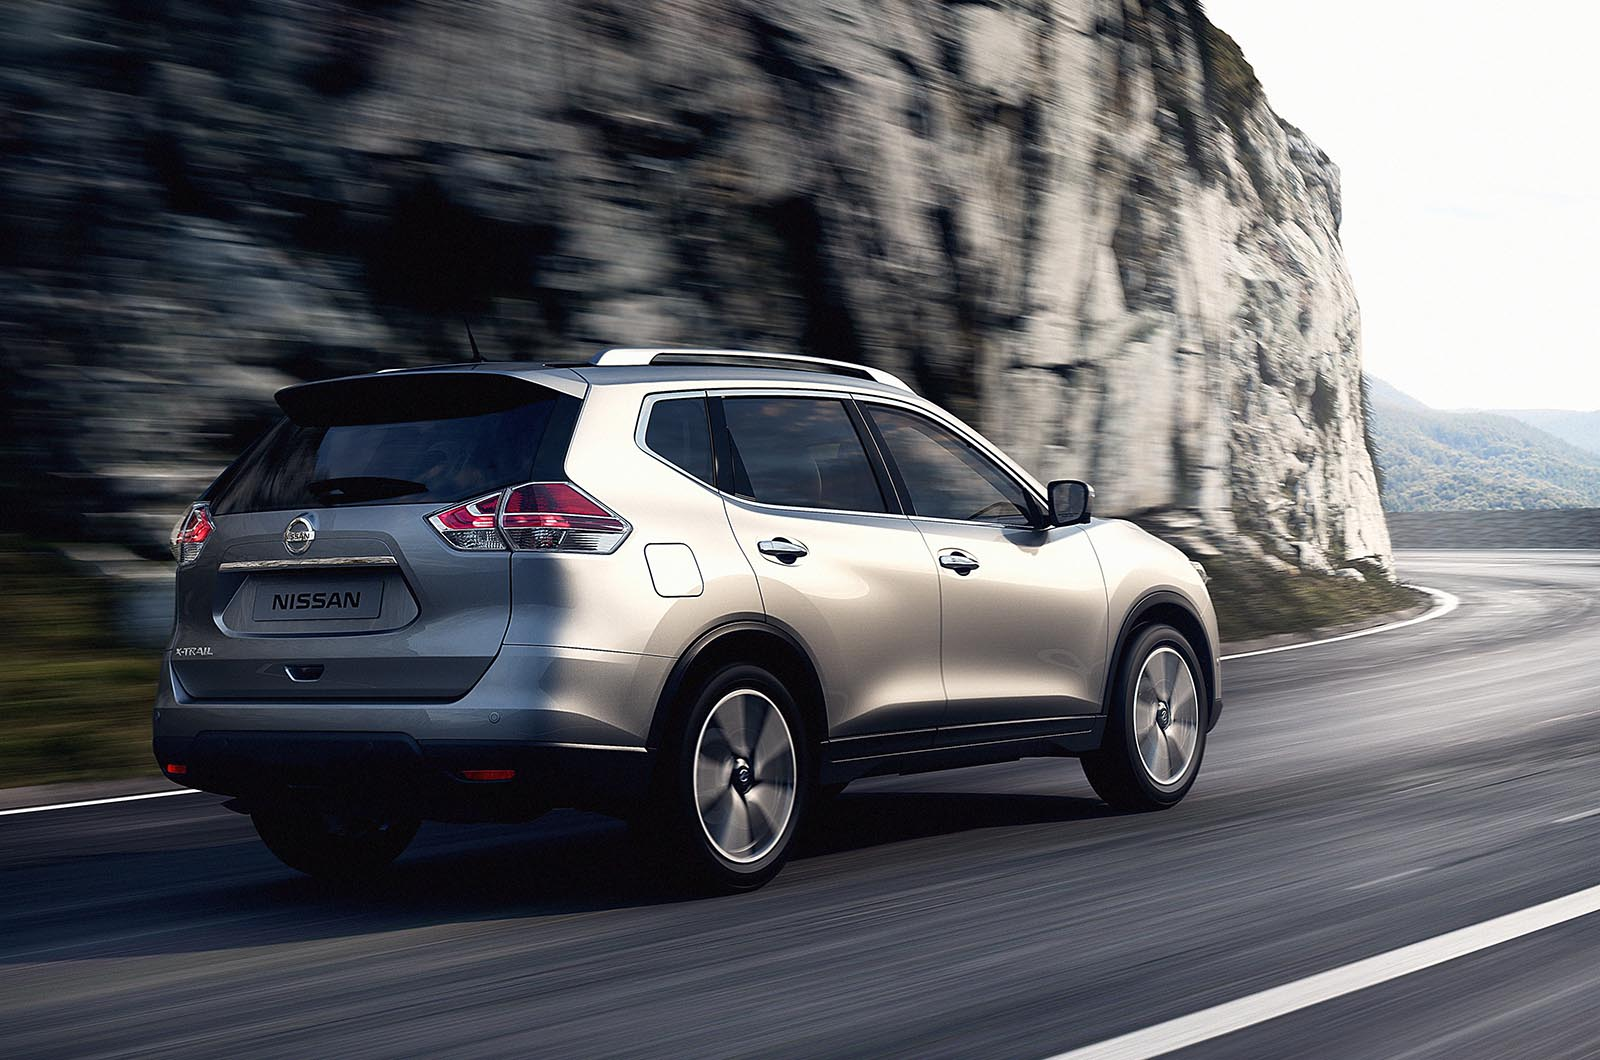 new nissan x trail photo gallery car gallery suv crossovers autocar india. Black Bedroom Furniture Sets. Home Design Ideas